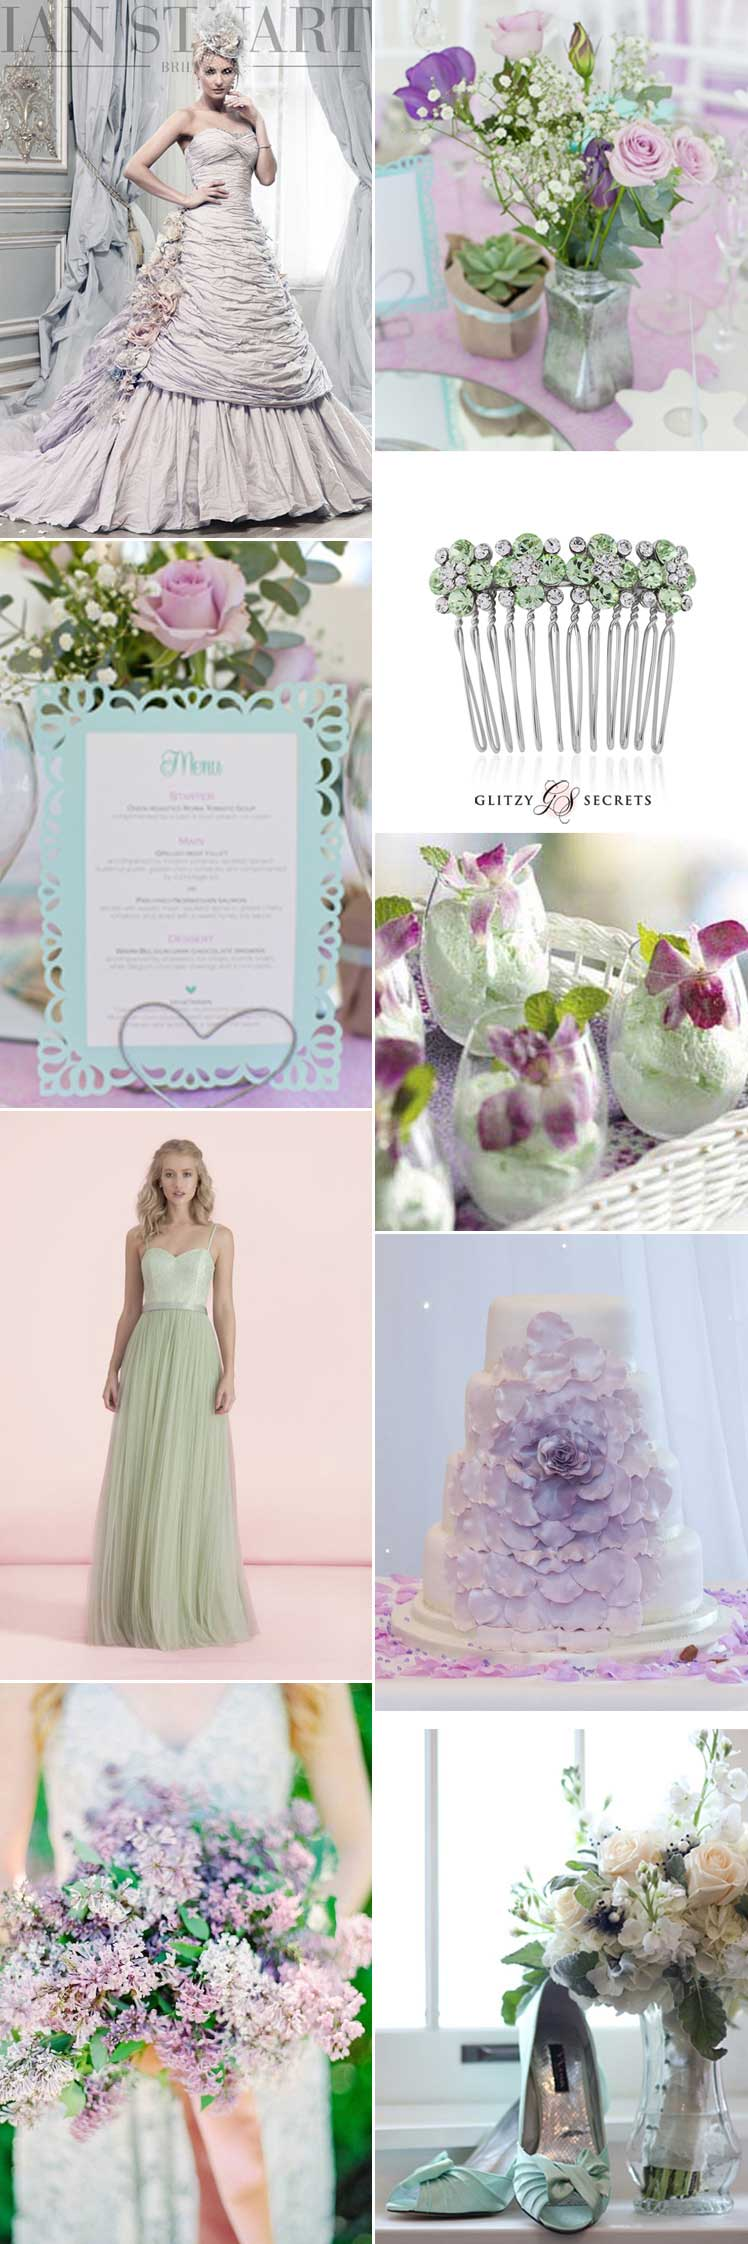 Mint Green and Lilac Wedding Ideas - Glitzy Secrets